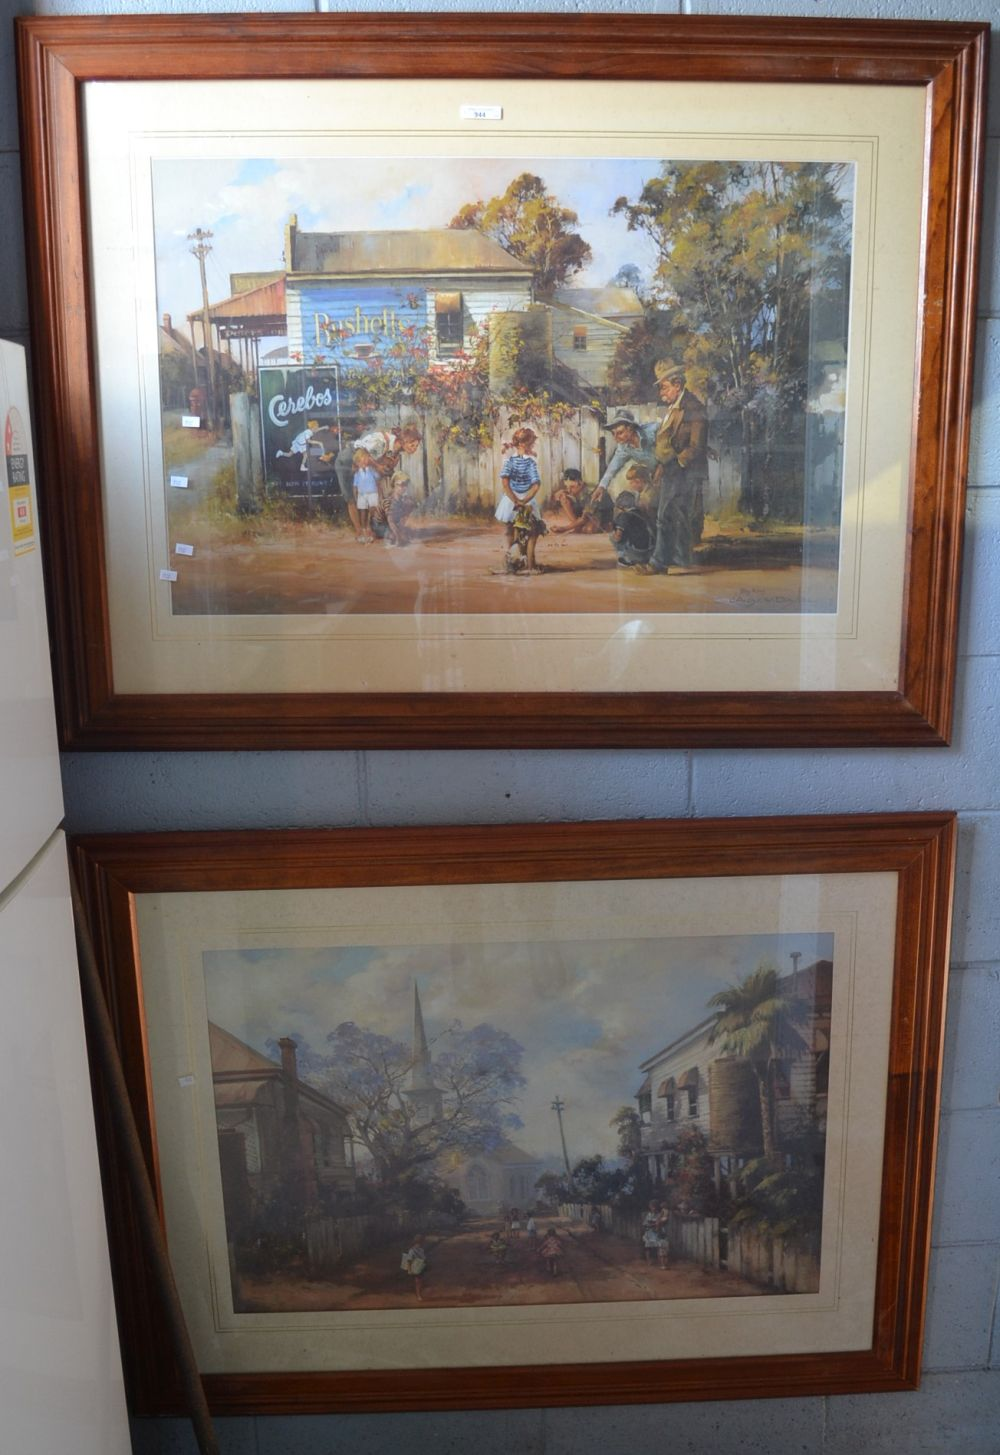 2 large framed prints by Darcy W Doyle